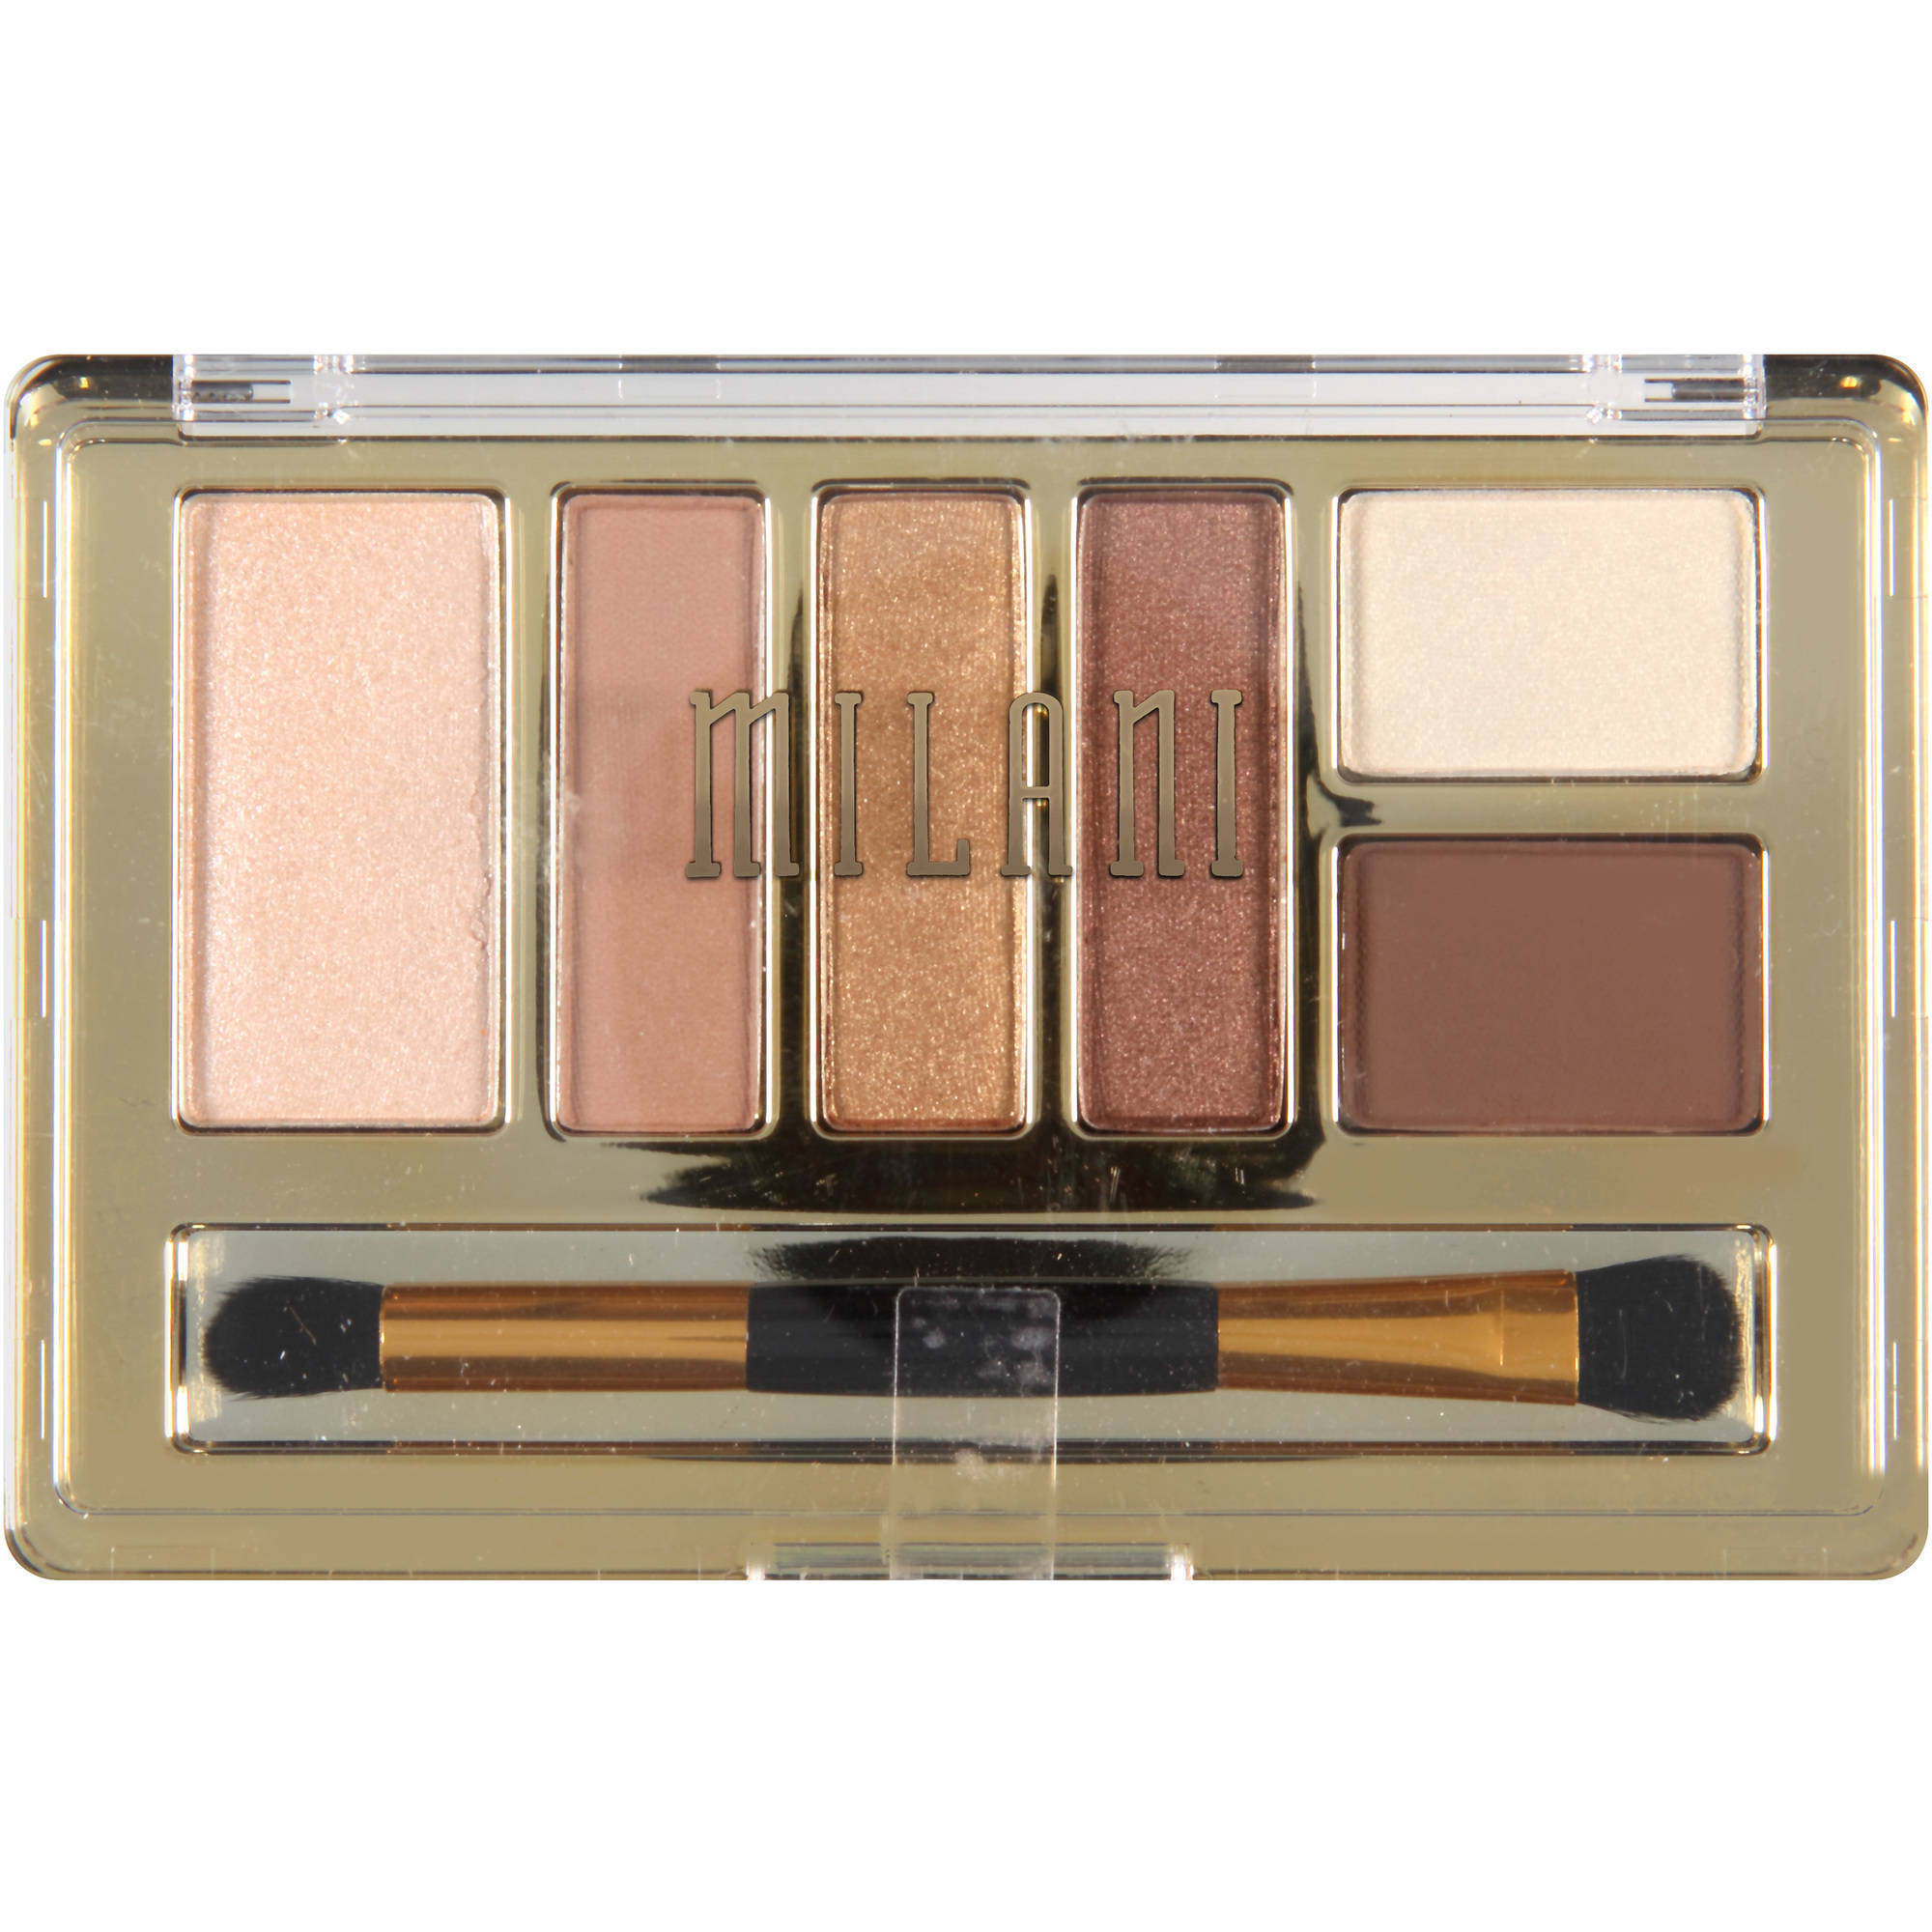 Milani Everyday Eyes Eyeshadow Collection, 02 Bare Necessities, 0.21 oz